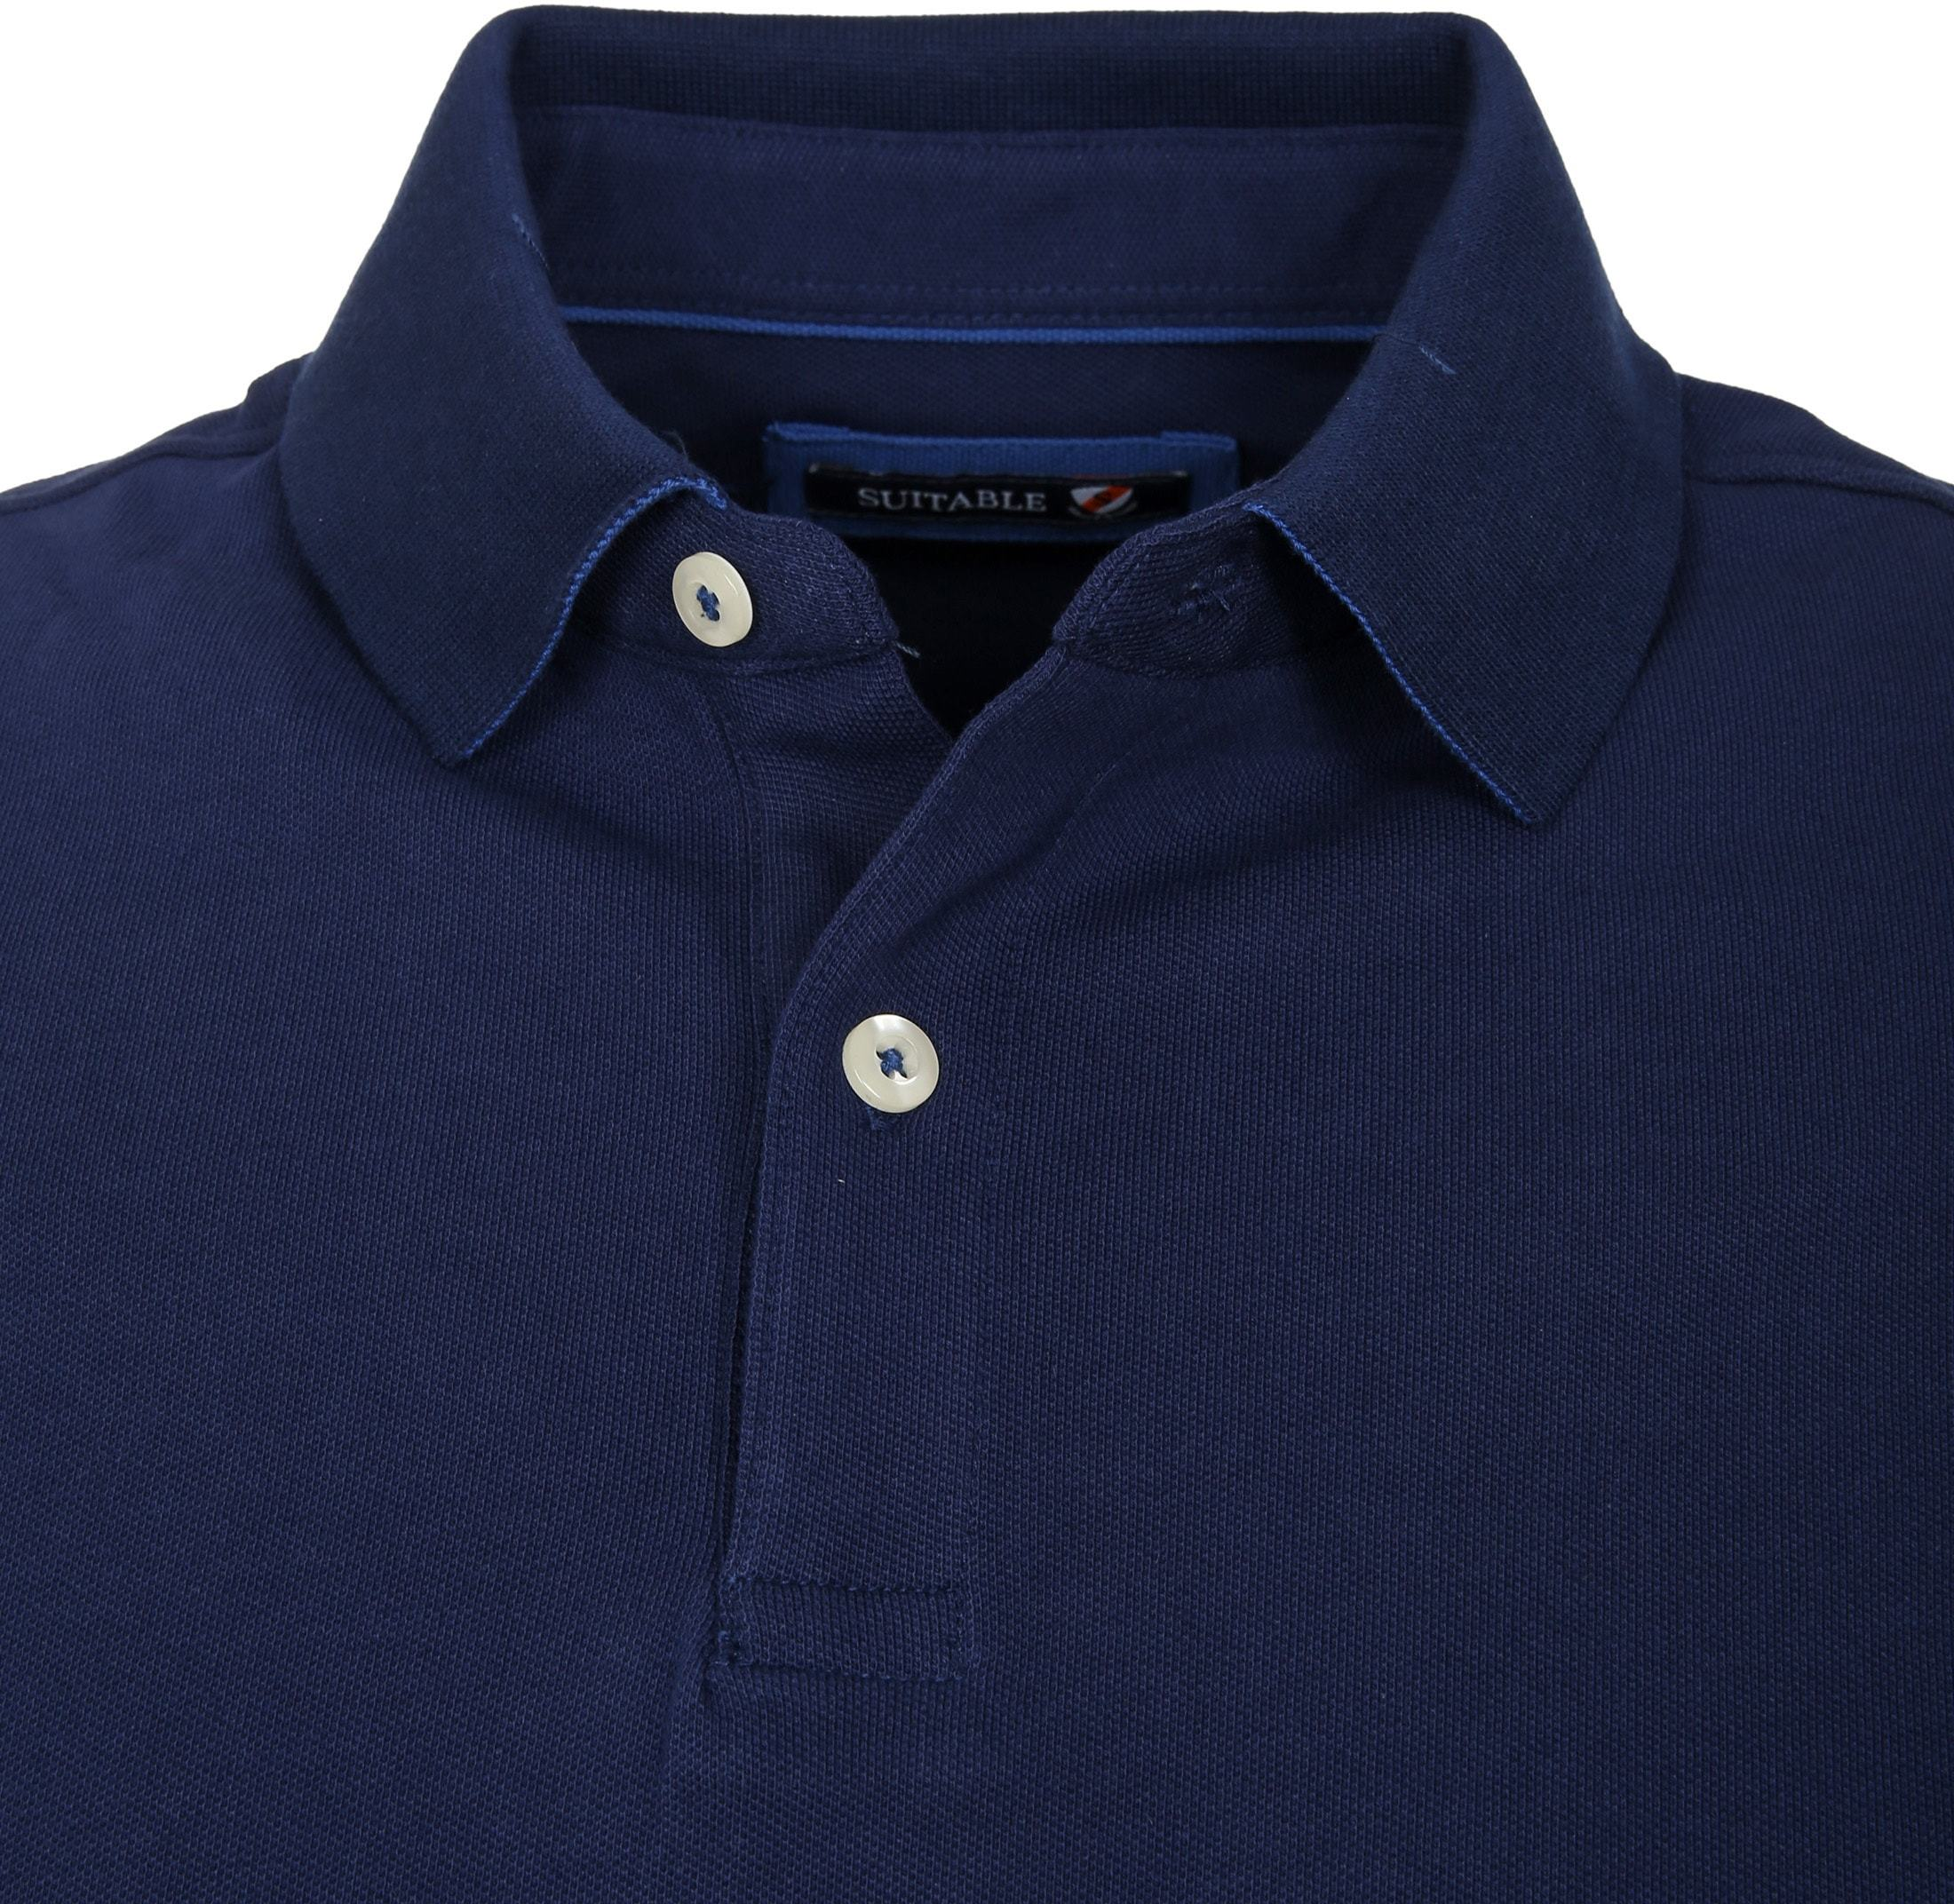 Suitable Poloshirt Basic Dunkelblau foto 1